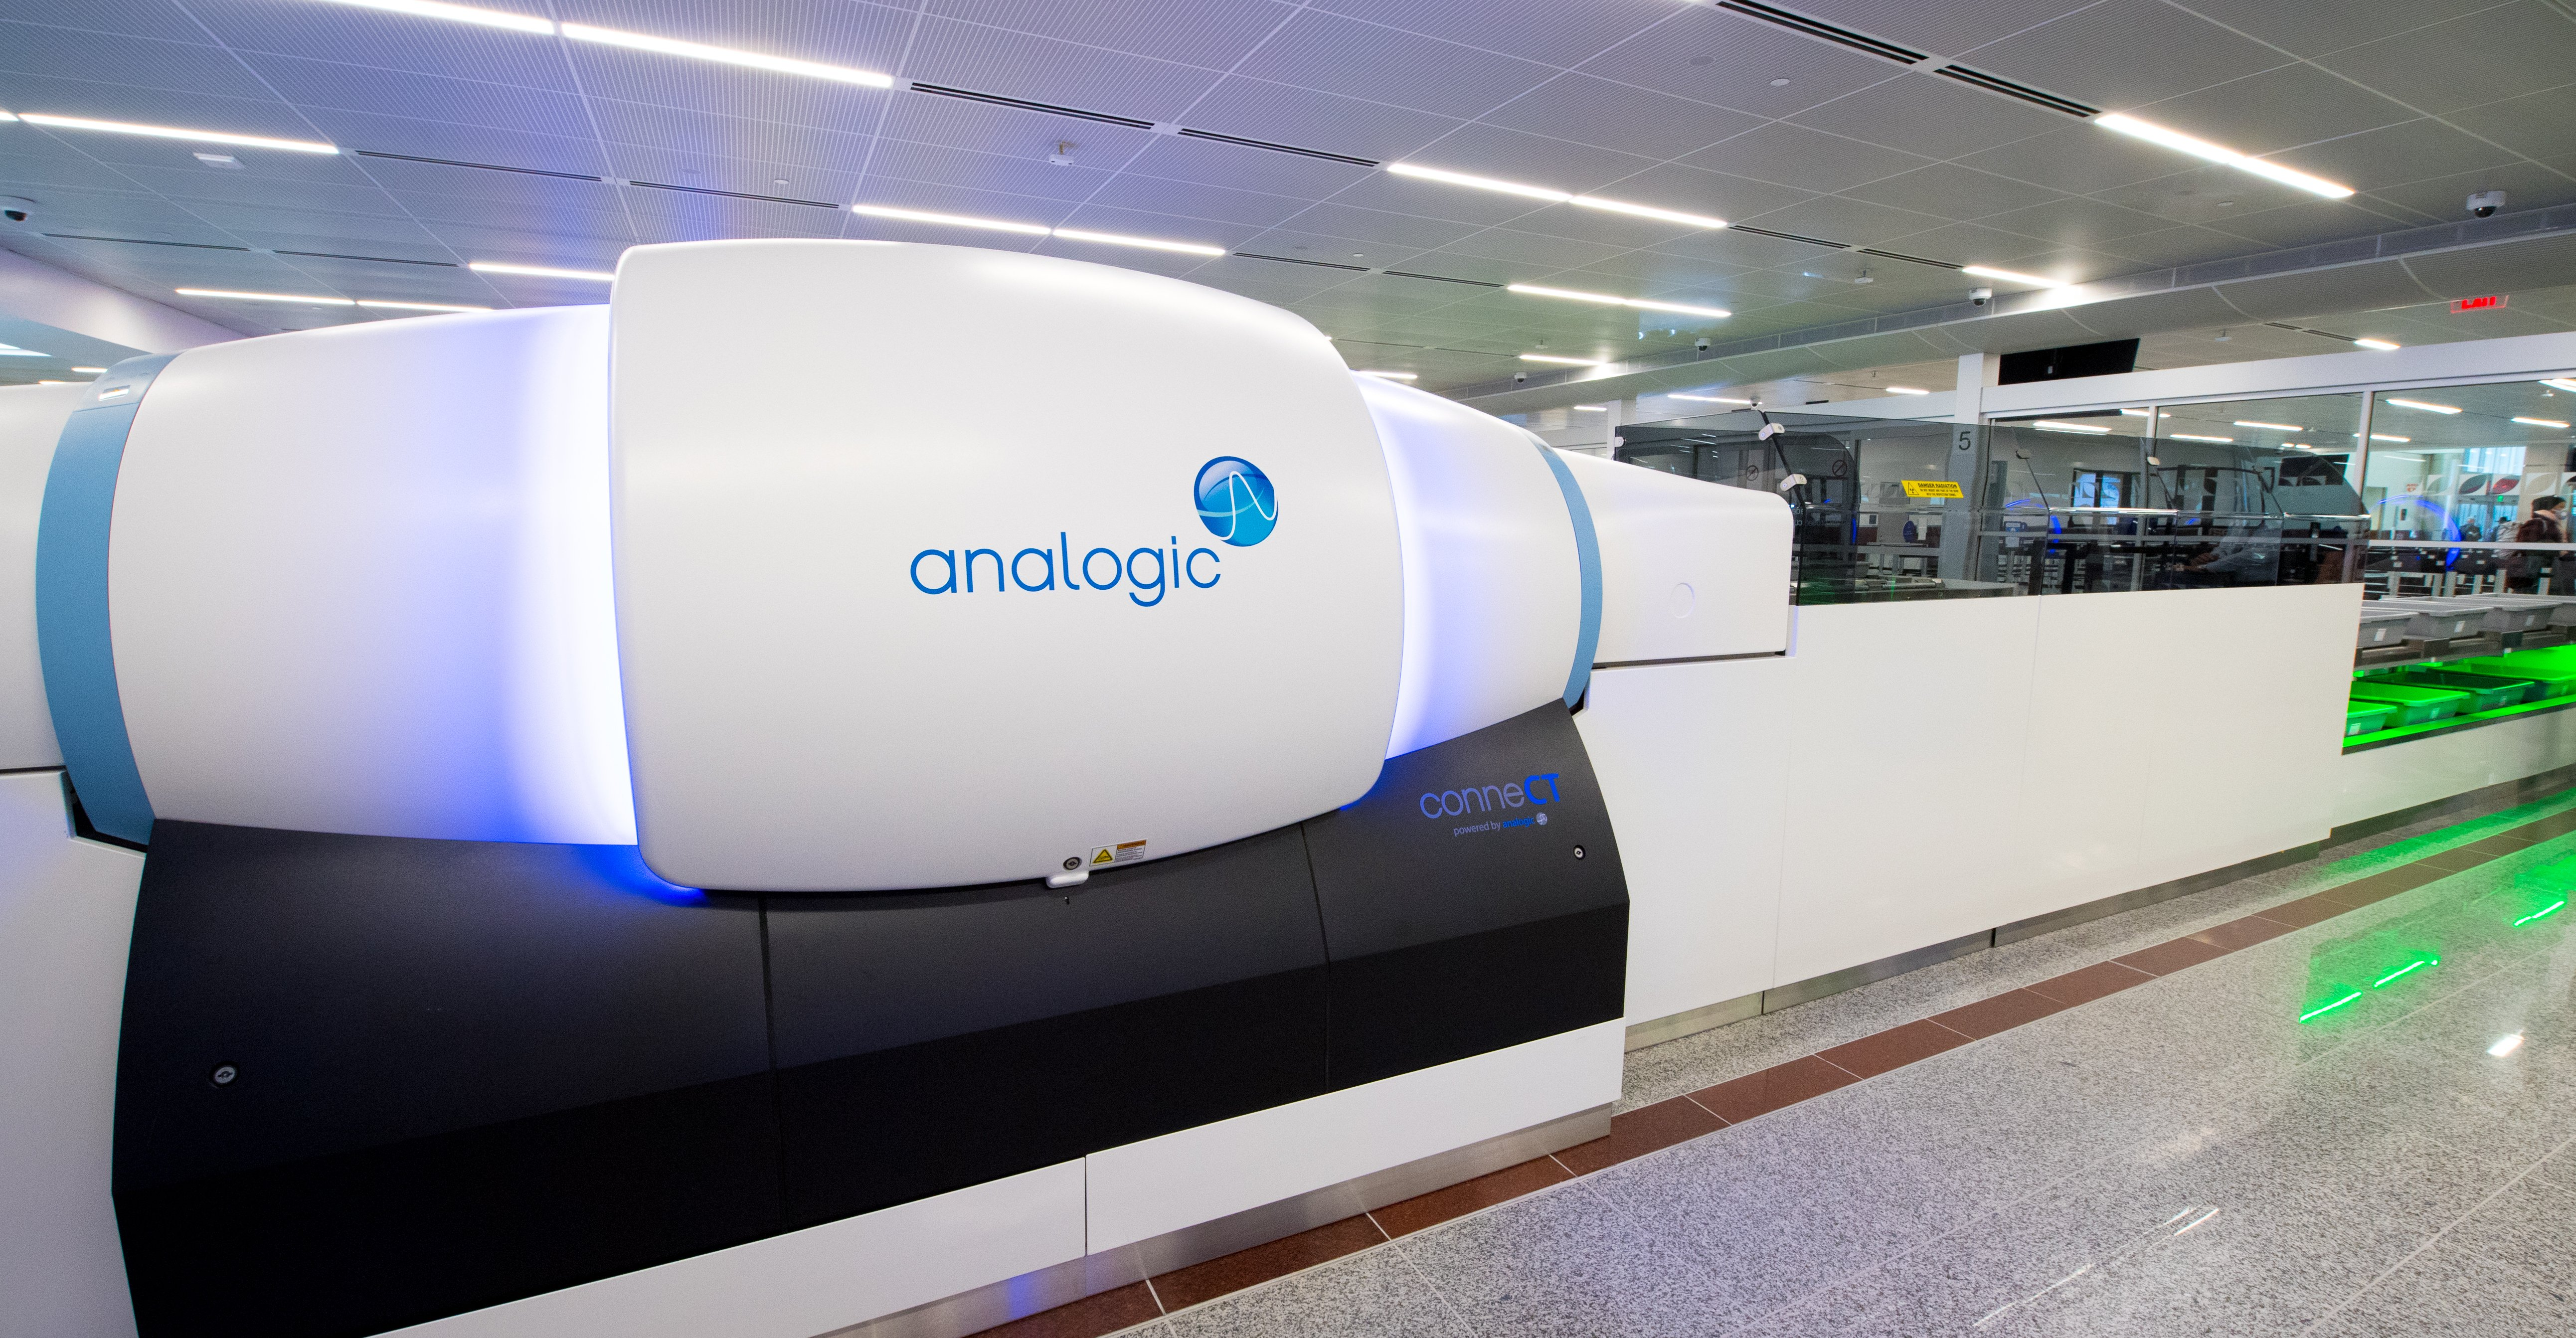 Analogic ConneCT scanner